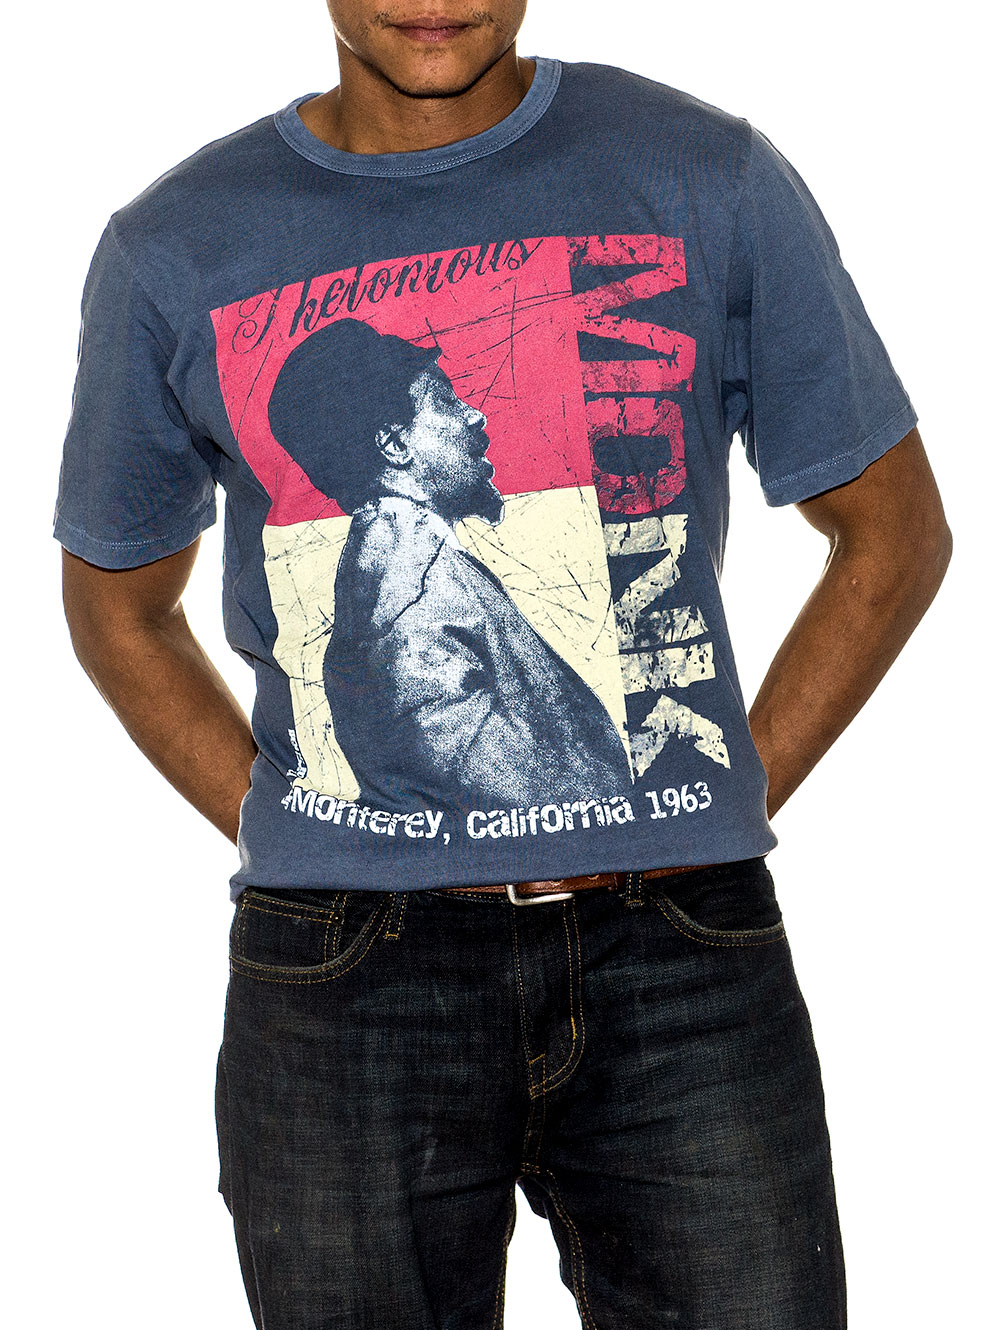 Thelonious Monk Monterey T-shirt image